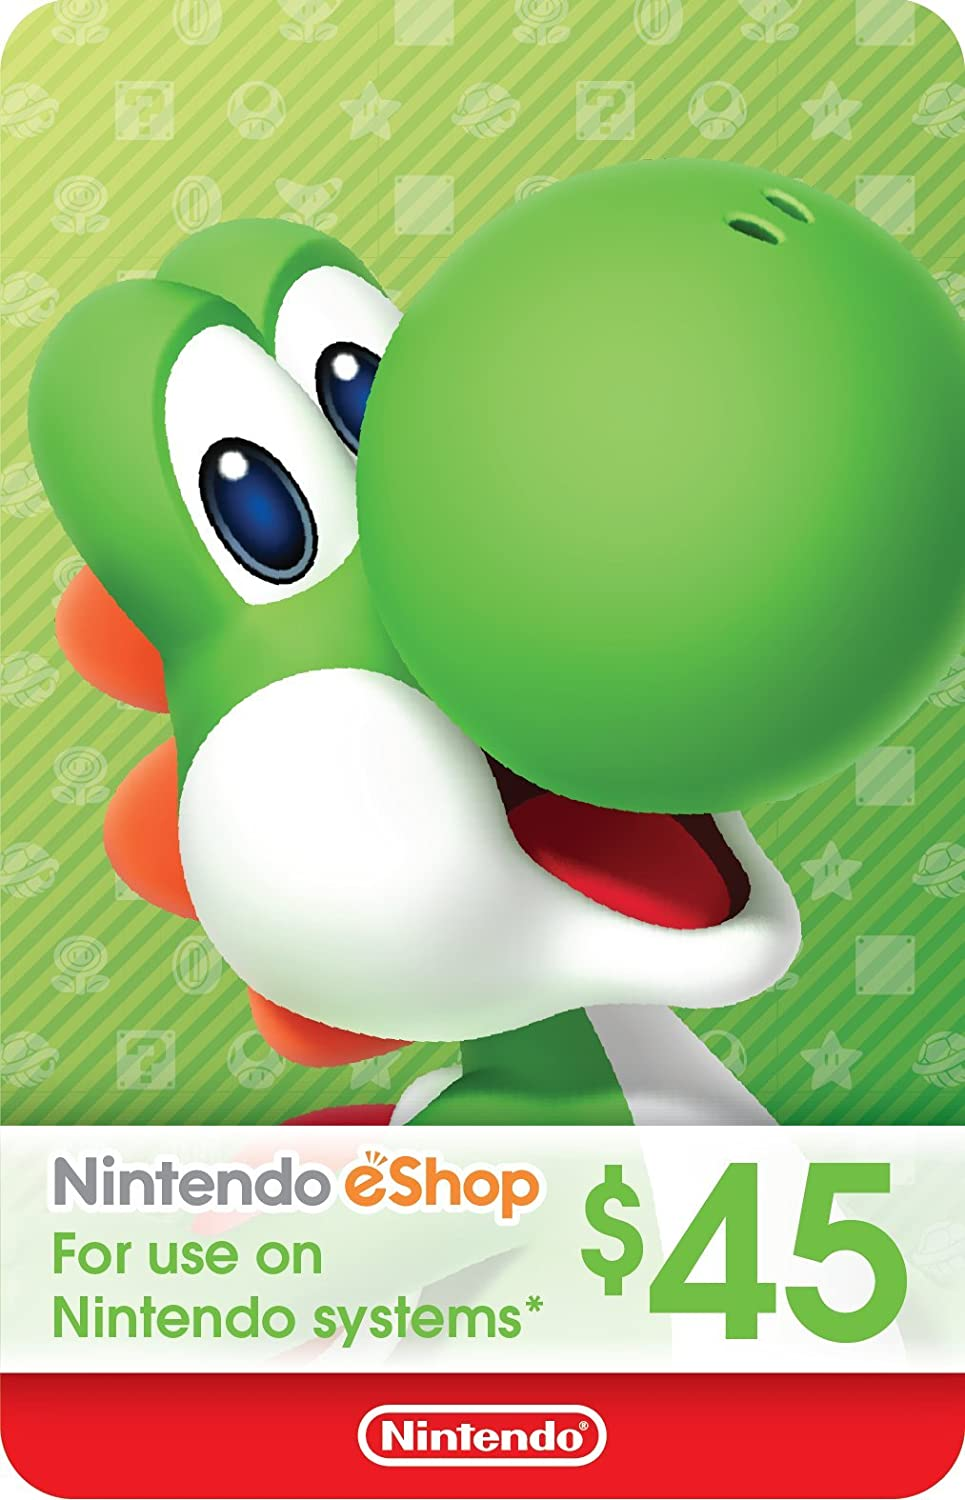 Amazon.com: $45 Nintendo eShop Gift Card [Digital Code ...